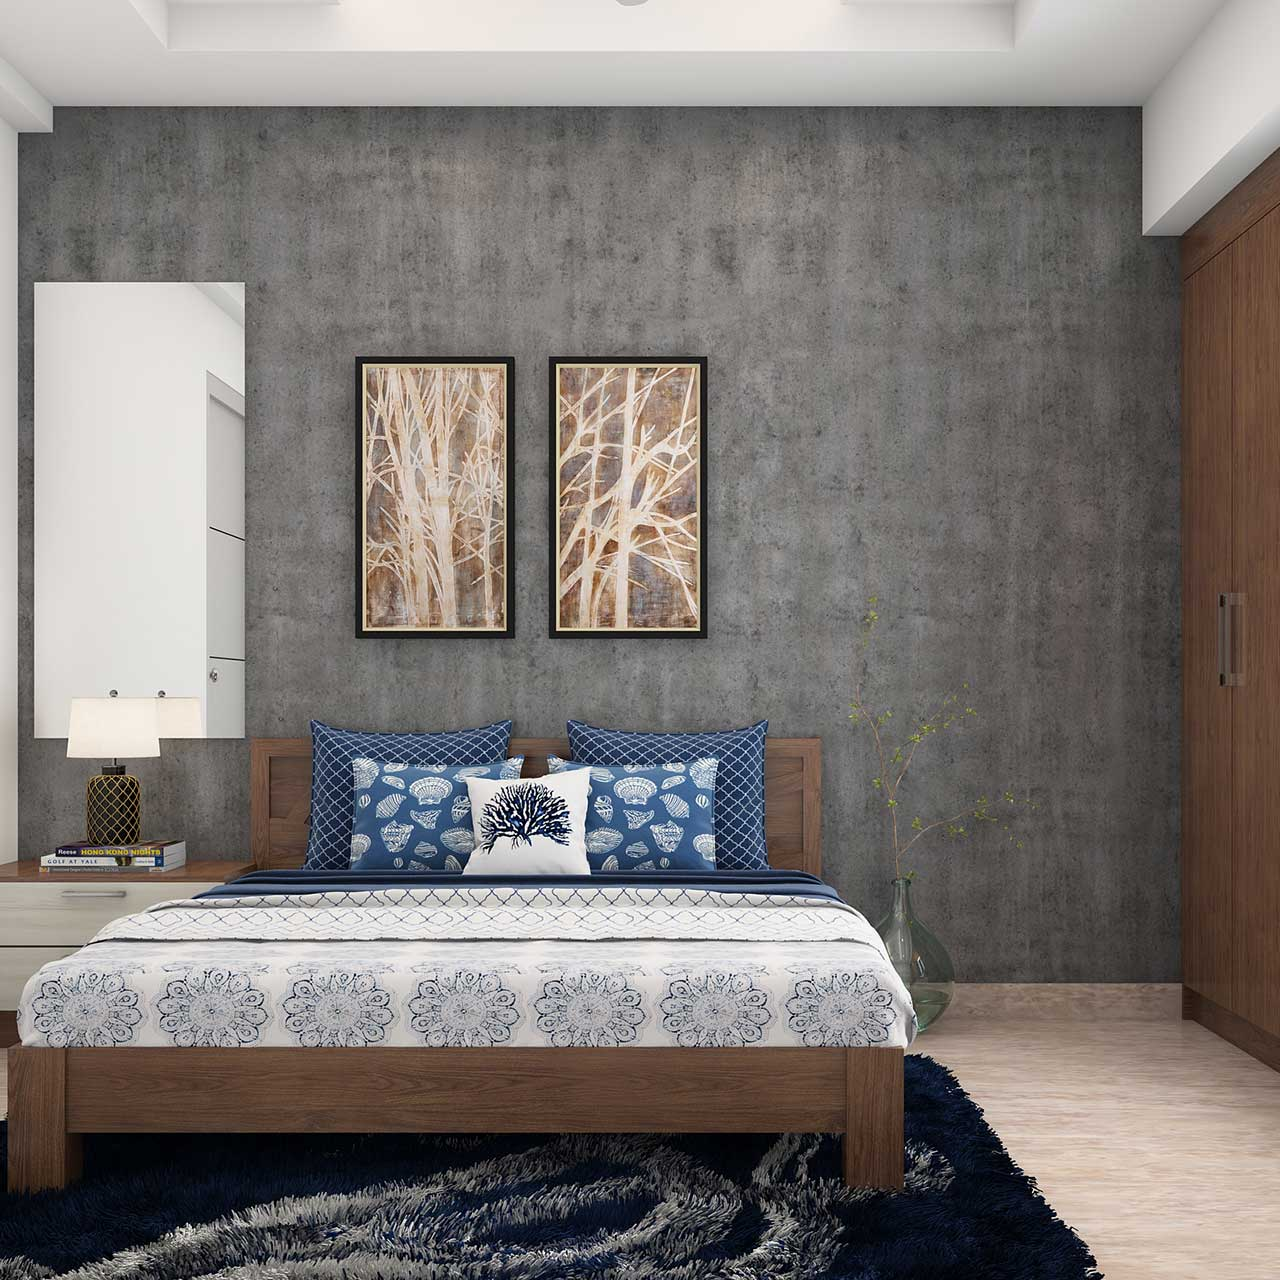 Indian style bedroom designs are all about rich textiles, antique furniture, and handicrafts